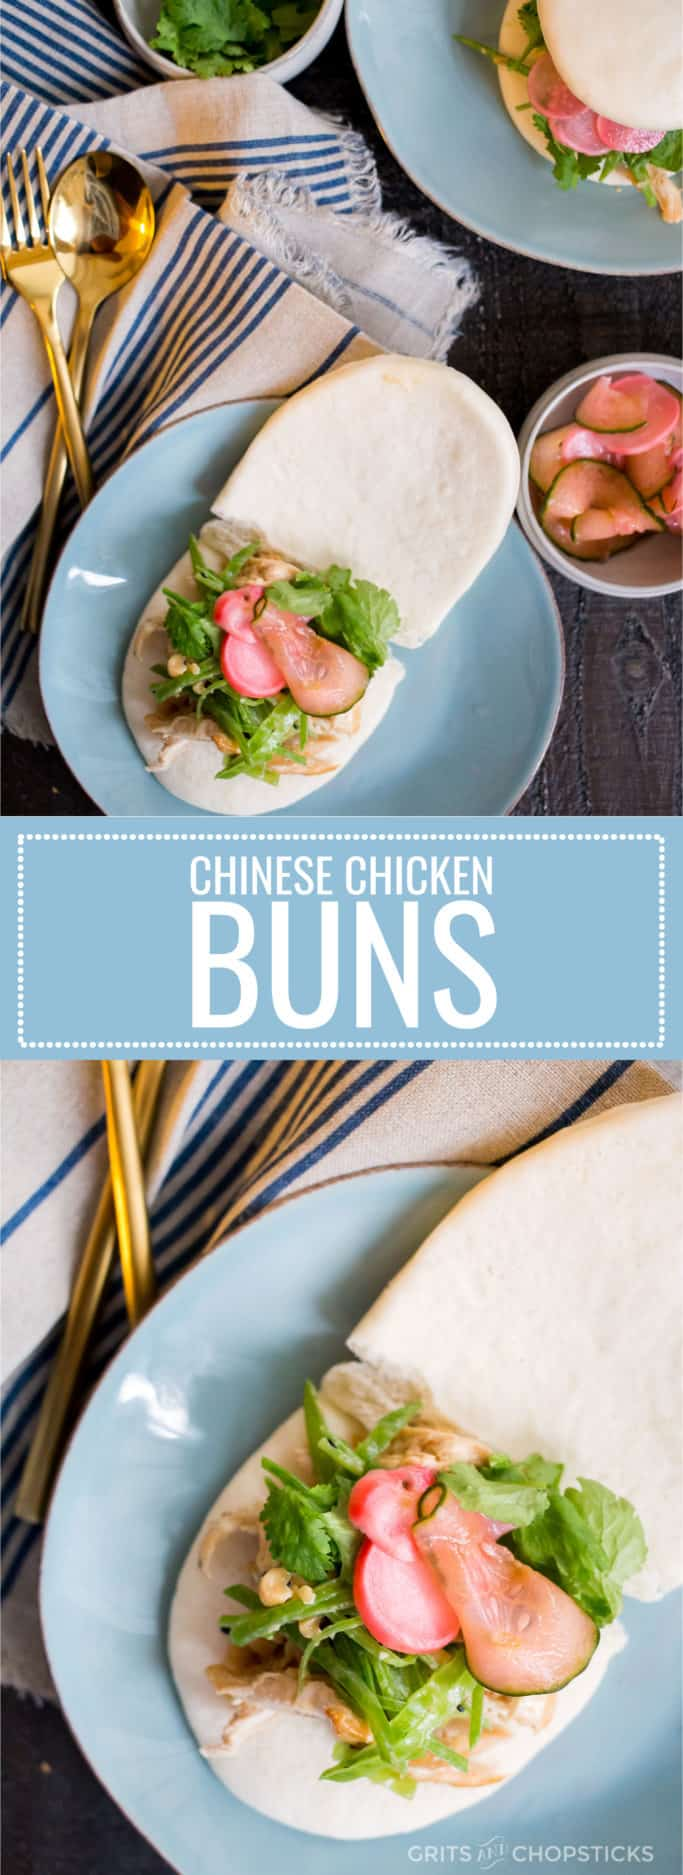 Make chinese chicken buns for a unique weeknight dinner!